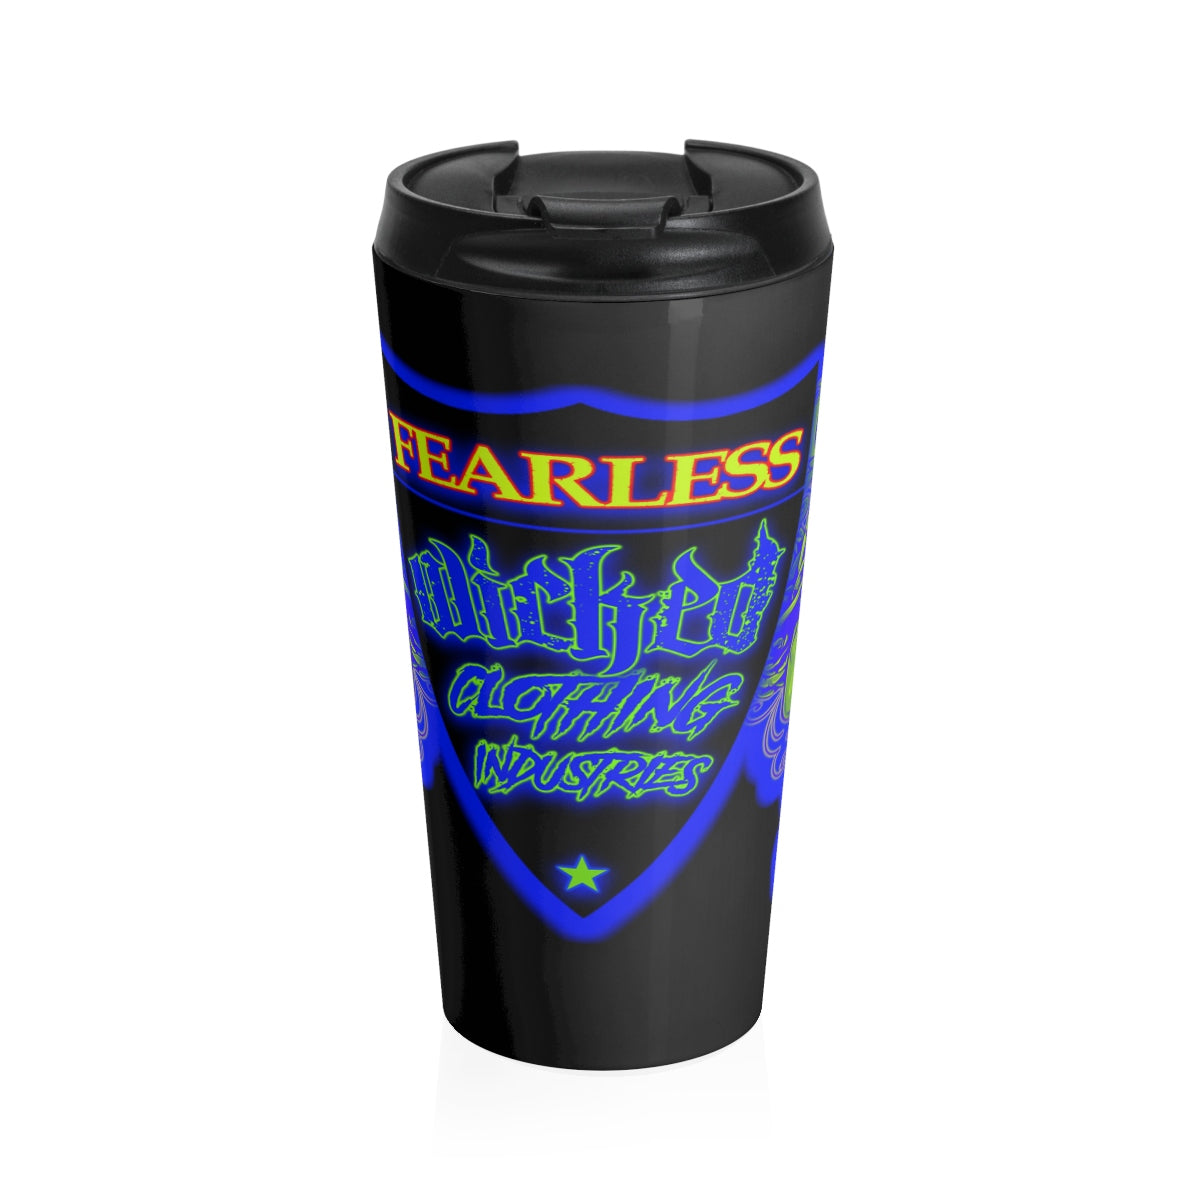 FEARLESS Stainless Steel Travel Mug